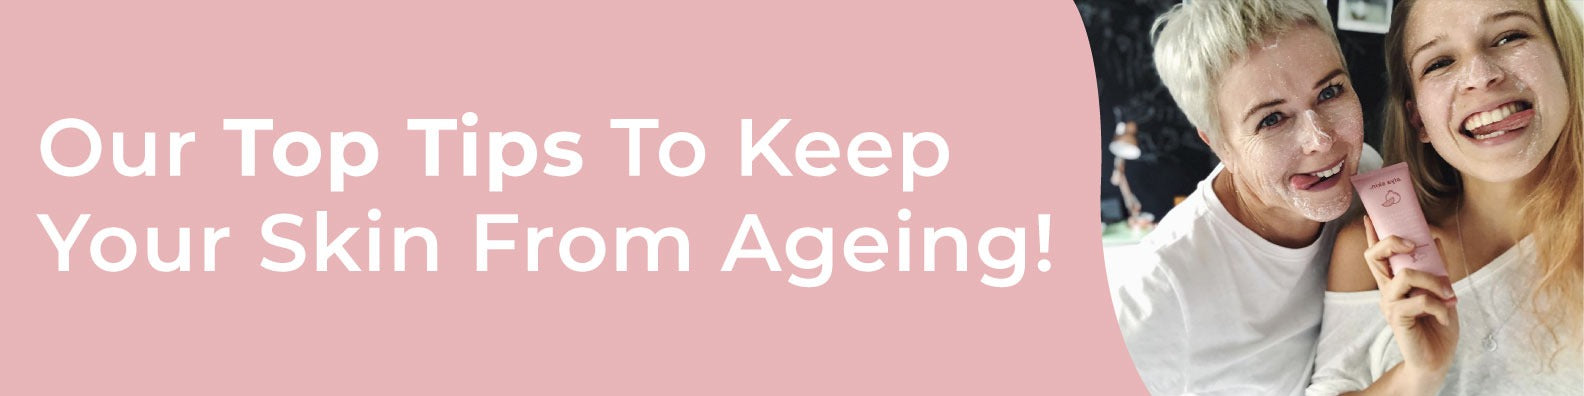 Our Top Tips To Keep Your Skin From Ageing!